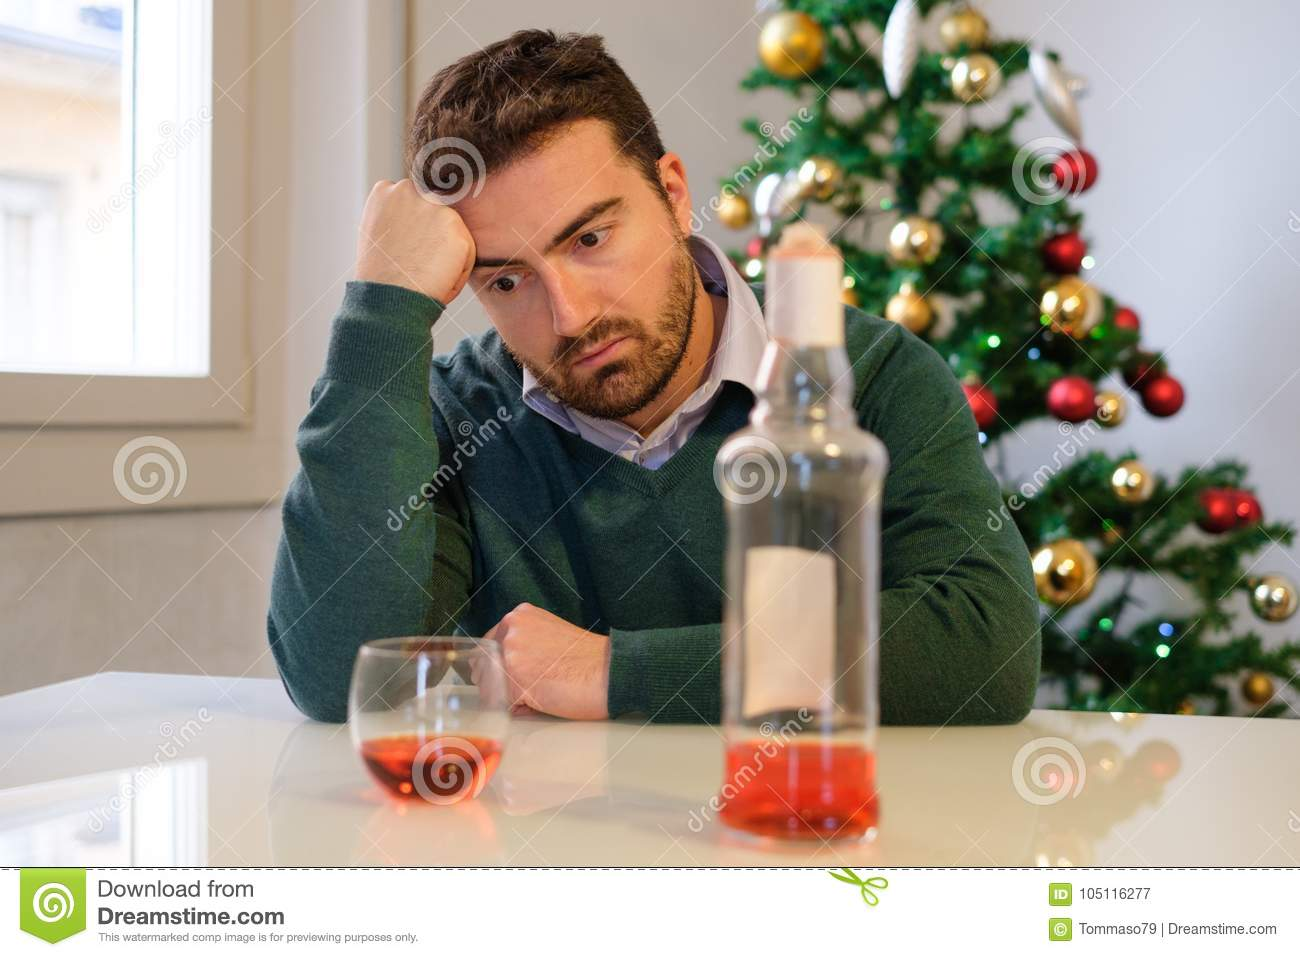 Alone For Christmas.Lonely Man Celebrating Christmas And Drinking Alone Stock